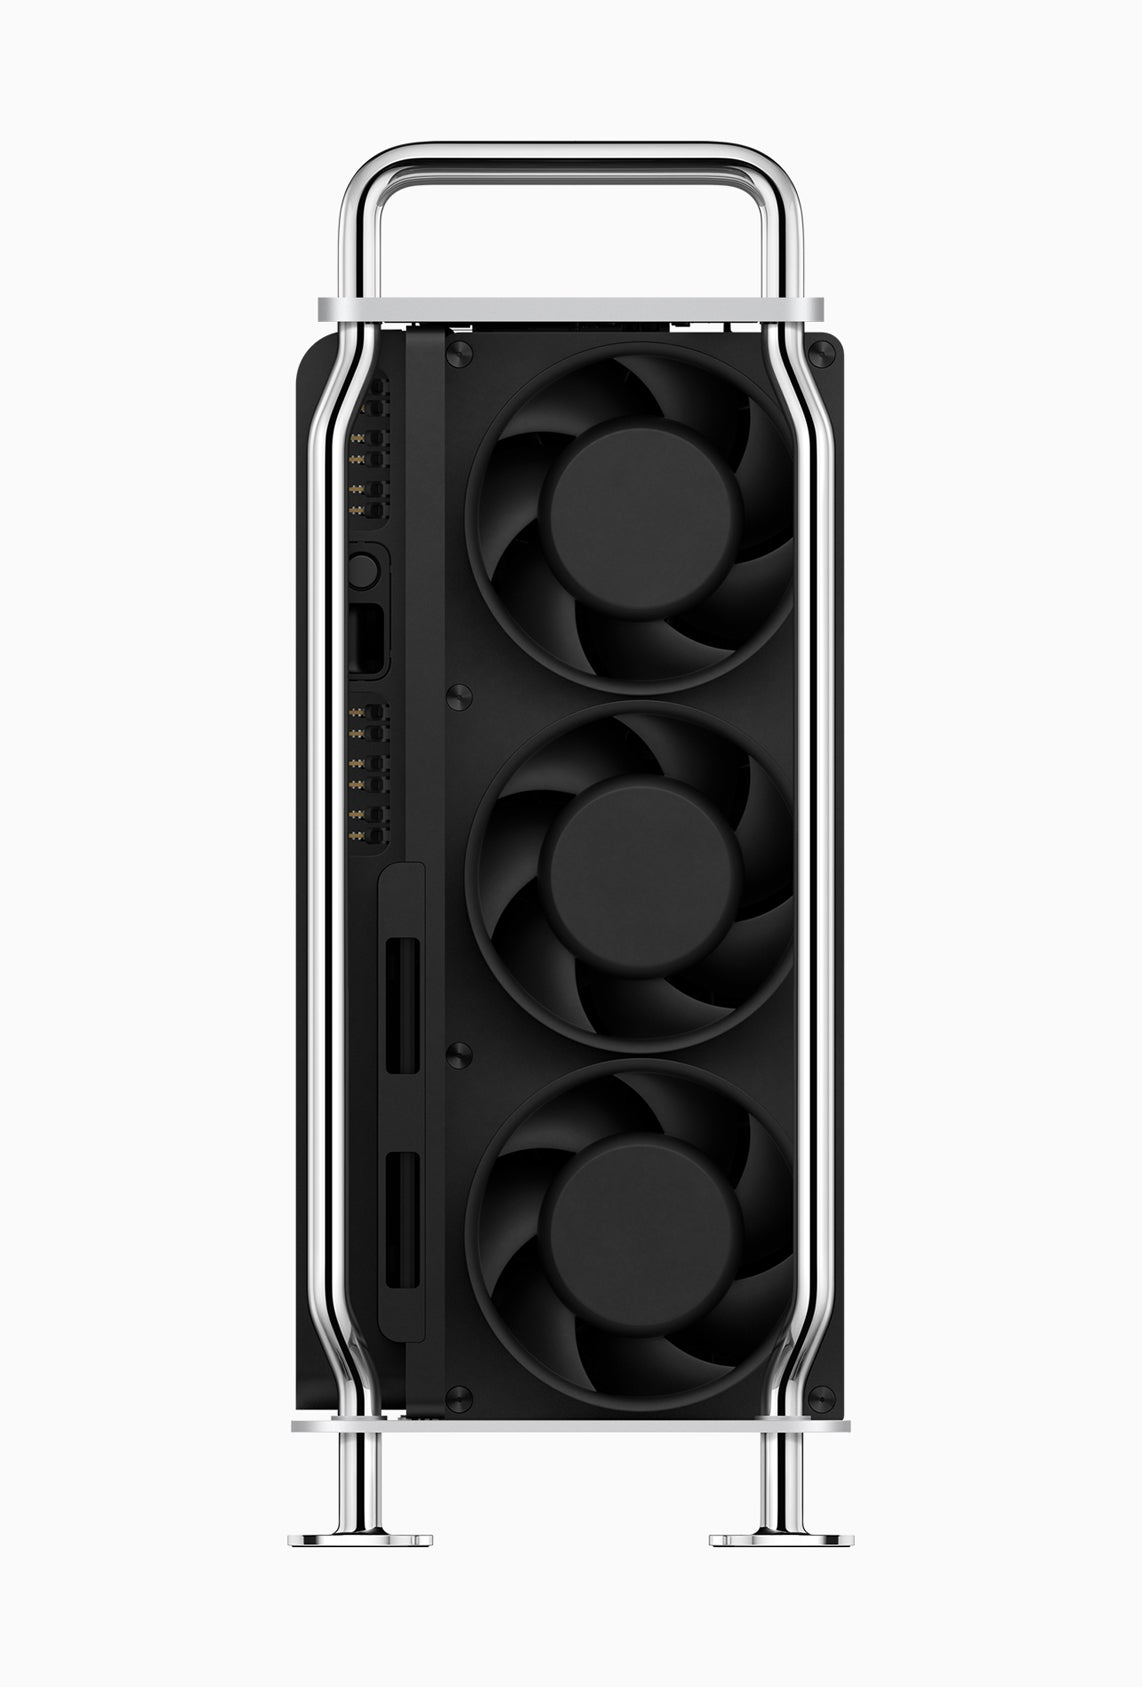 Apple S New Mac Pro Might Be The Monster Mac Professionals